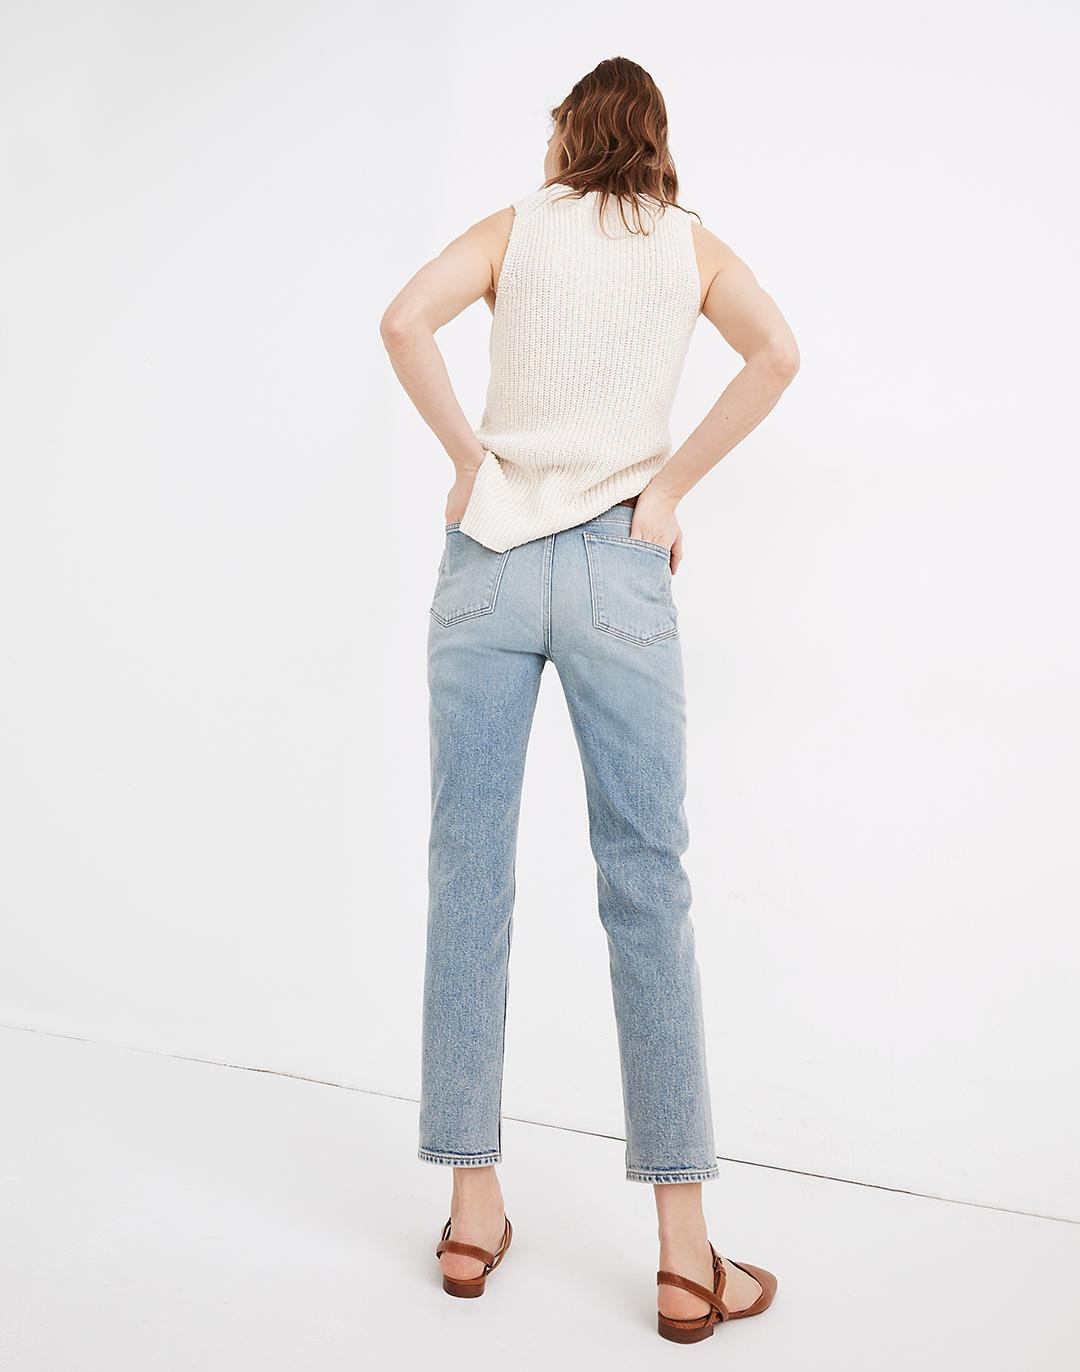 Rivet & Thread Perfect Vintage Jeans in Ryerson Wash 2